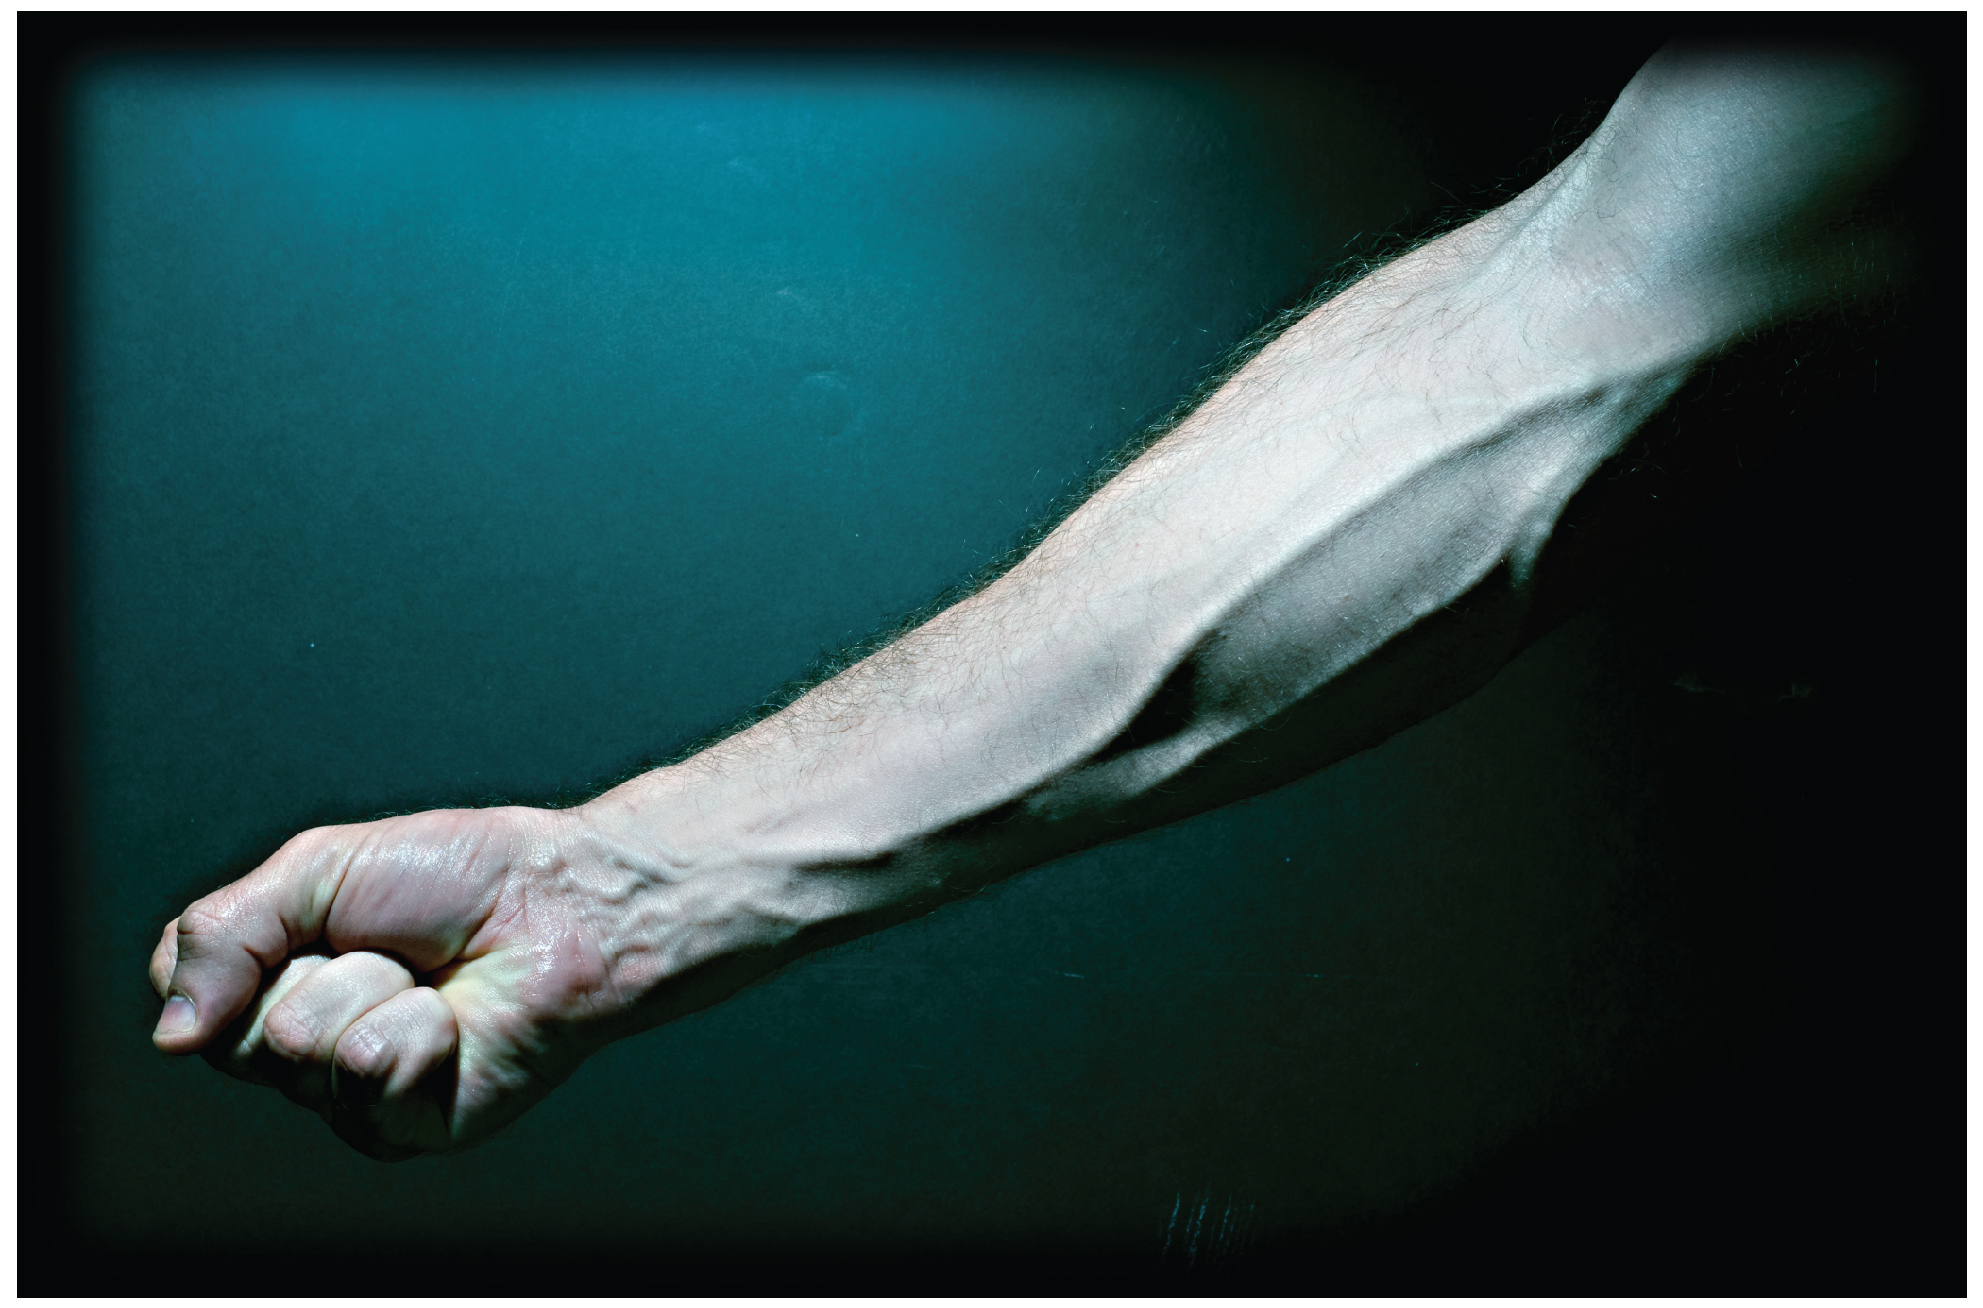 This photo shows a forearm with the veins bulging.